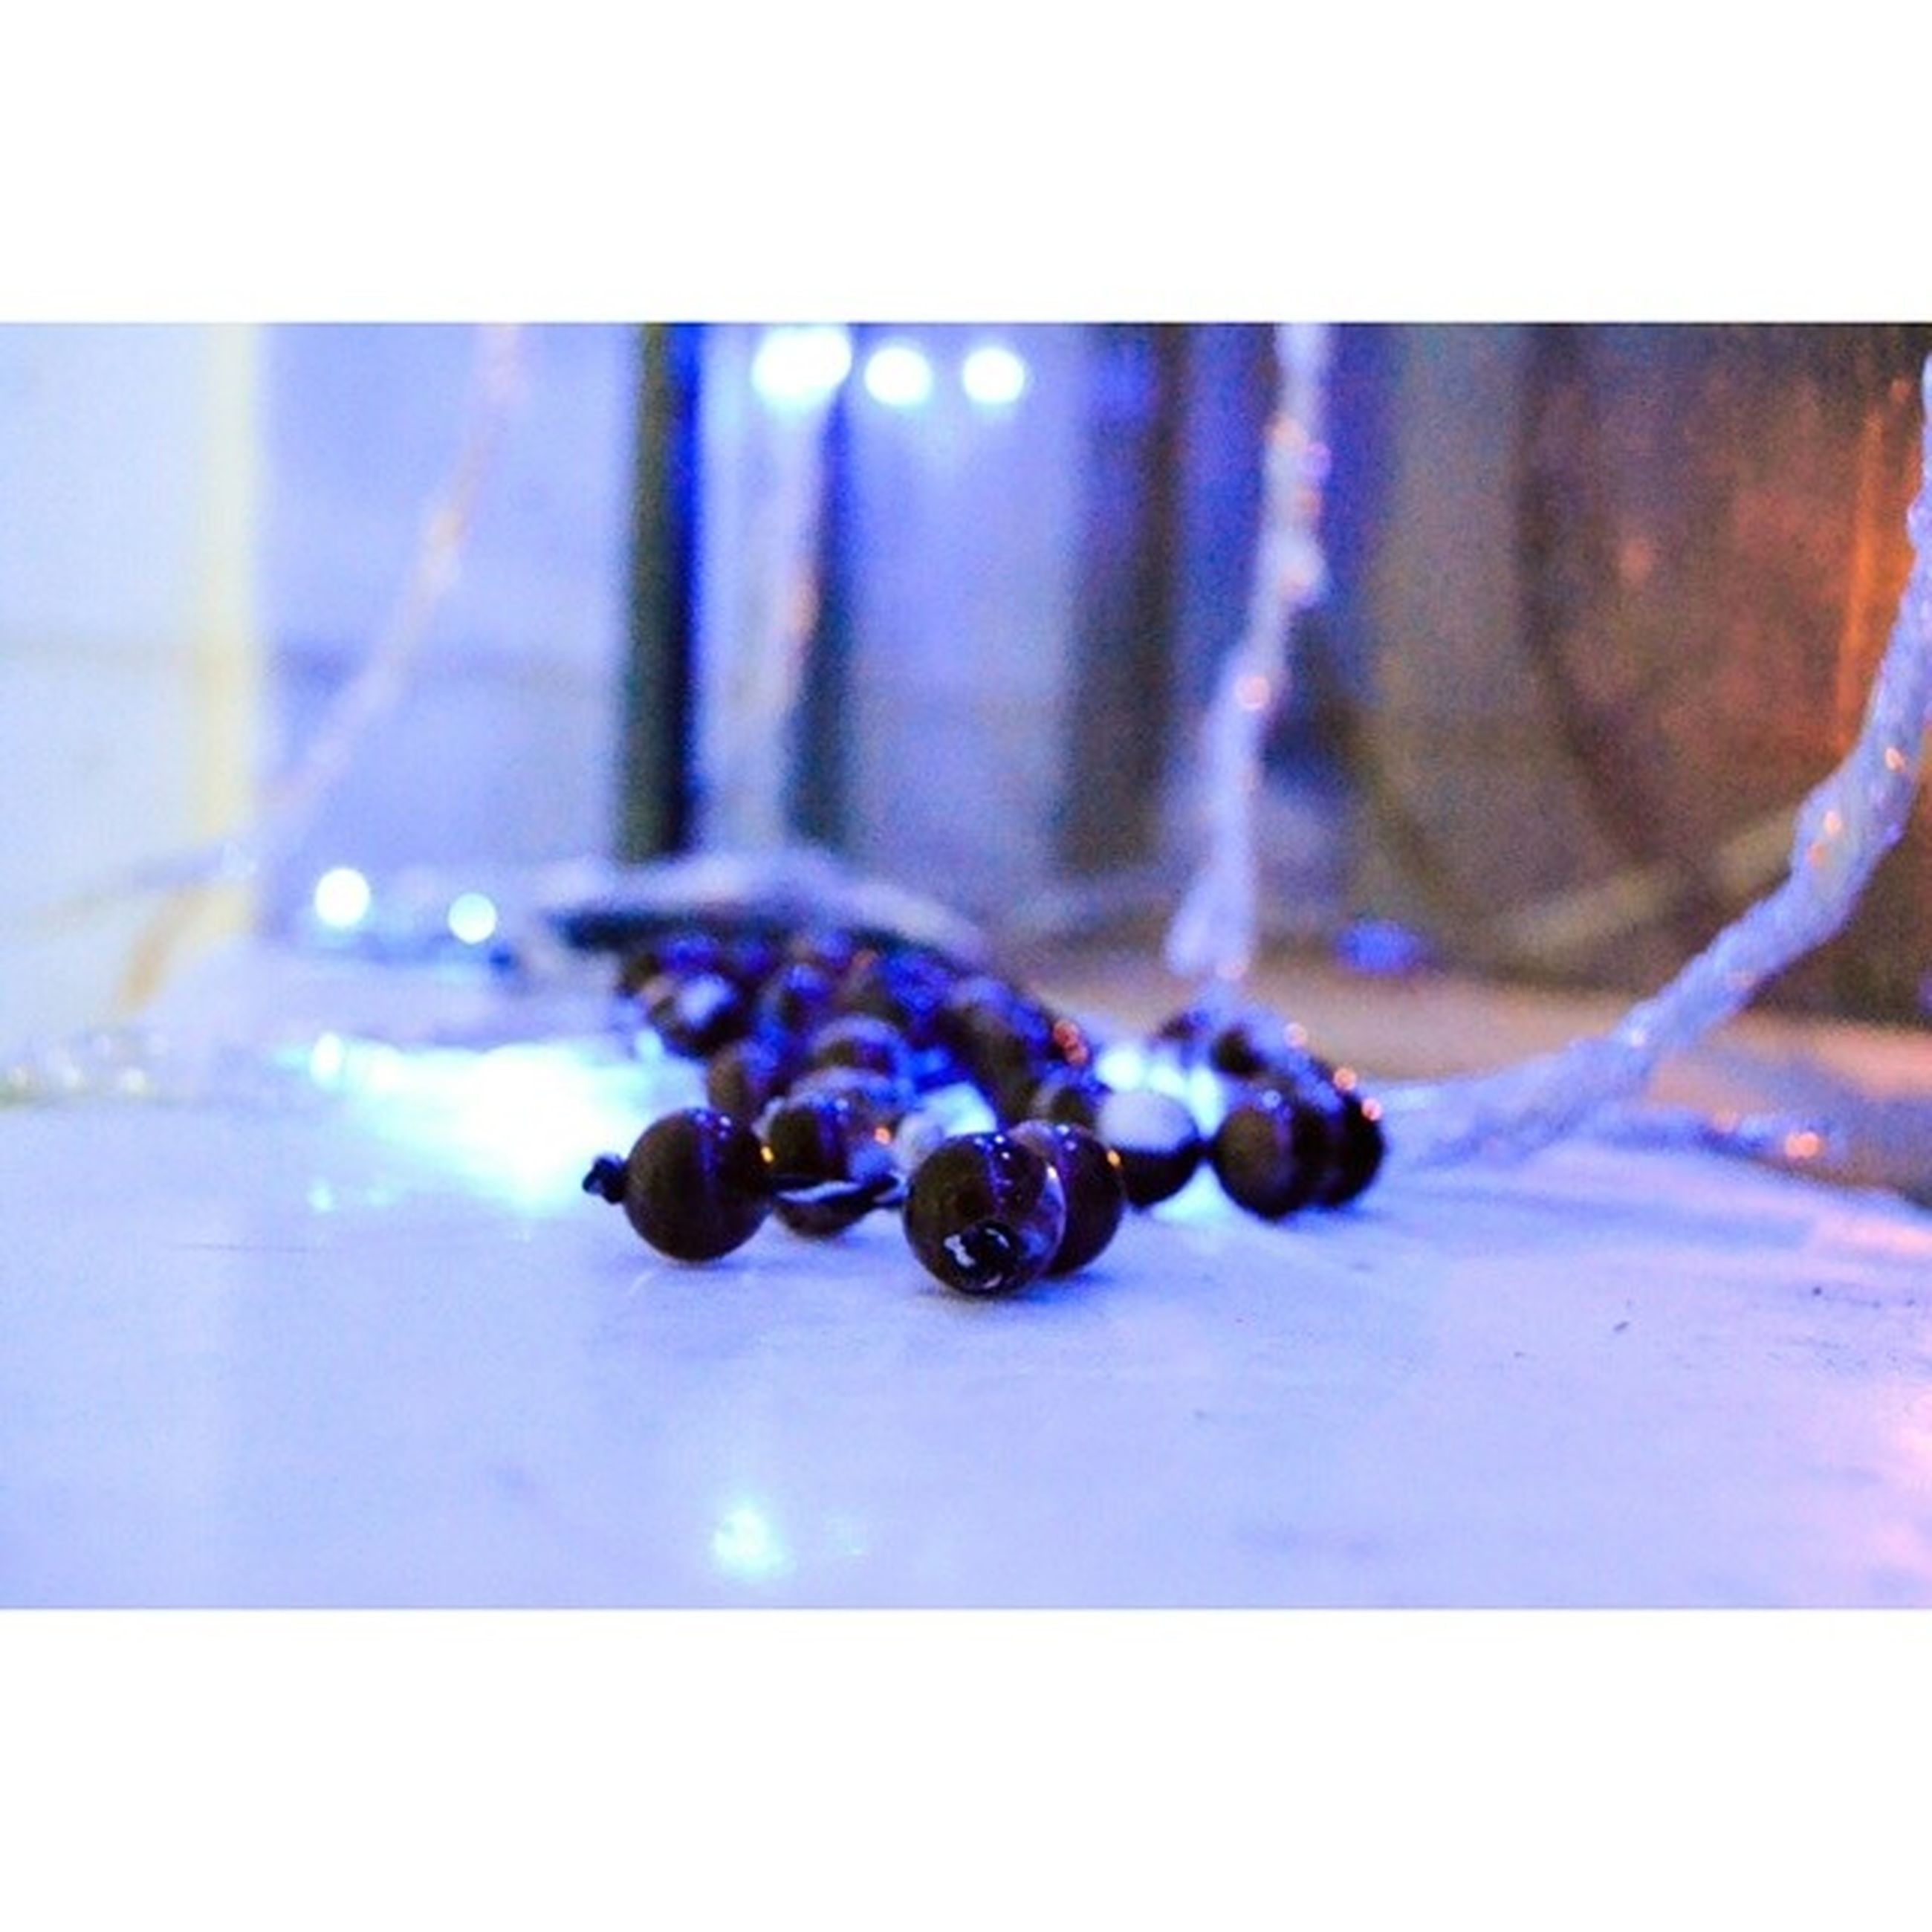 food and drink, fruit, food, indoors, freshness, close-up, still life, healthy eating, table, auto post production filter, selective focus, transfer print, focus on foreground, blue, ripe, berry fruit, large group of objects, blueberry, grape, no people